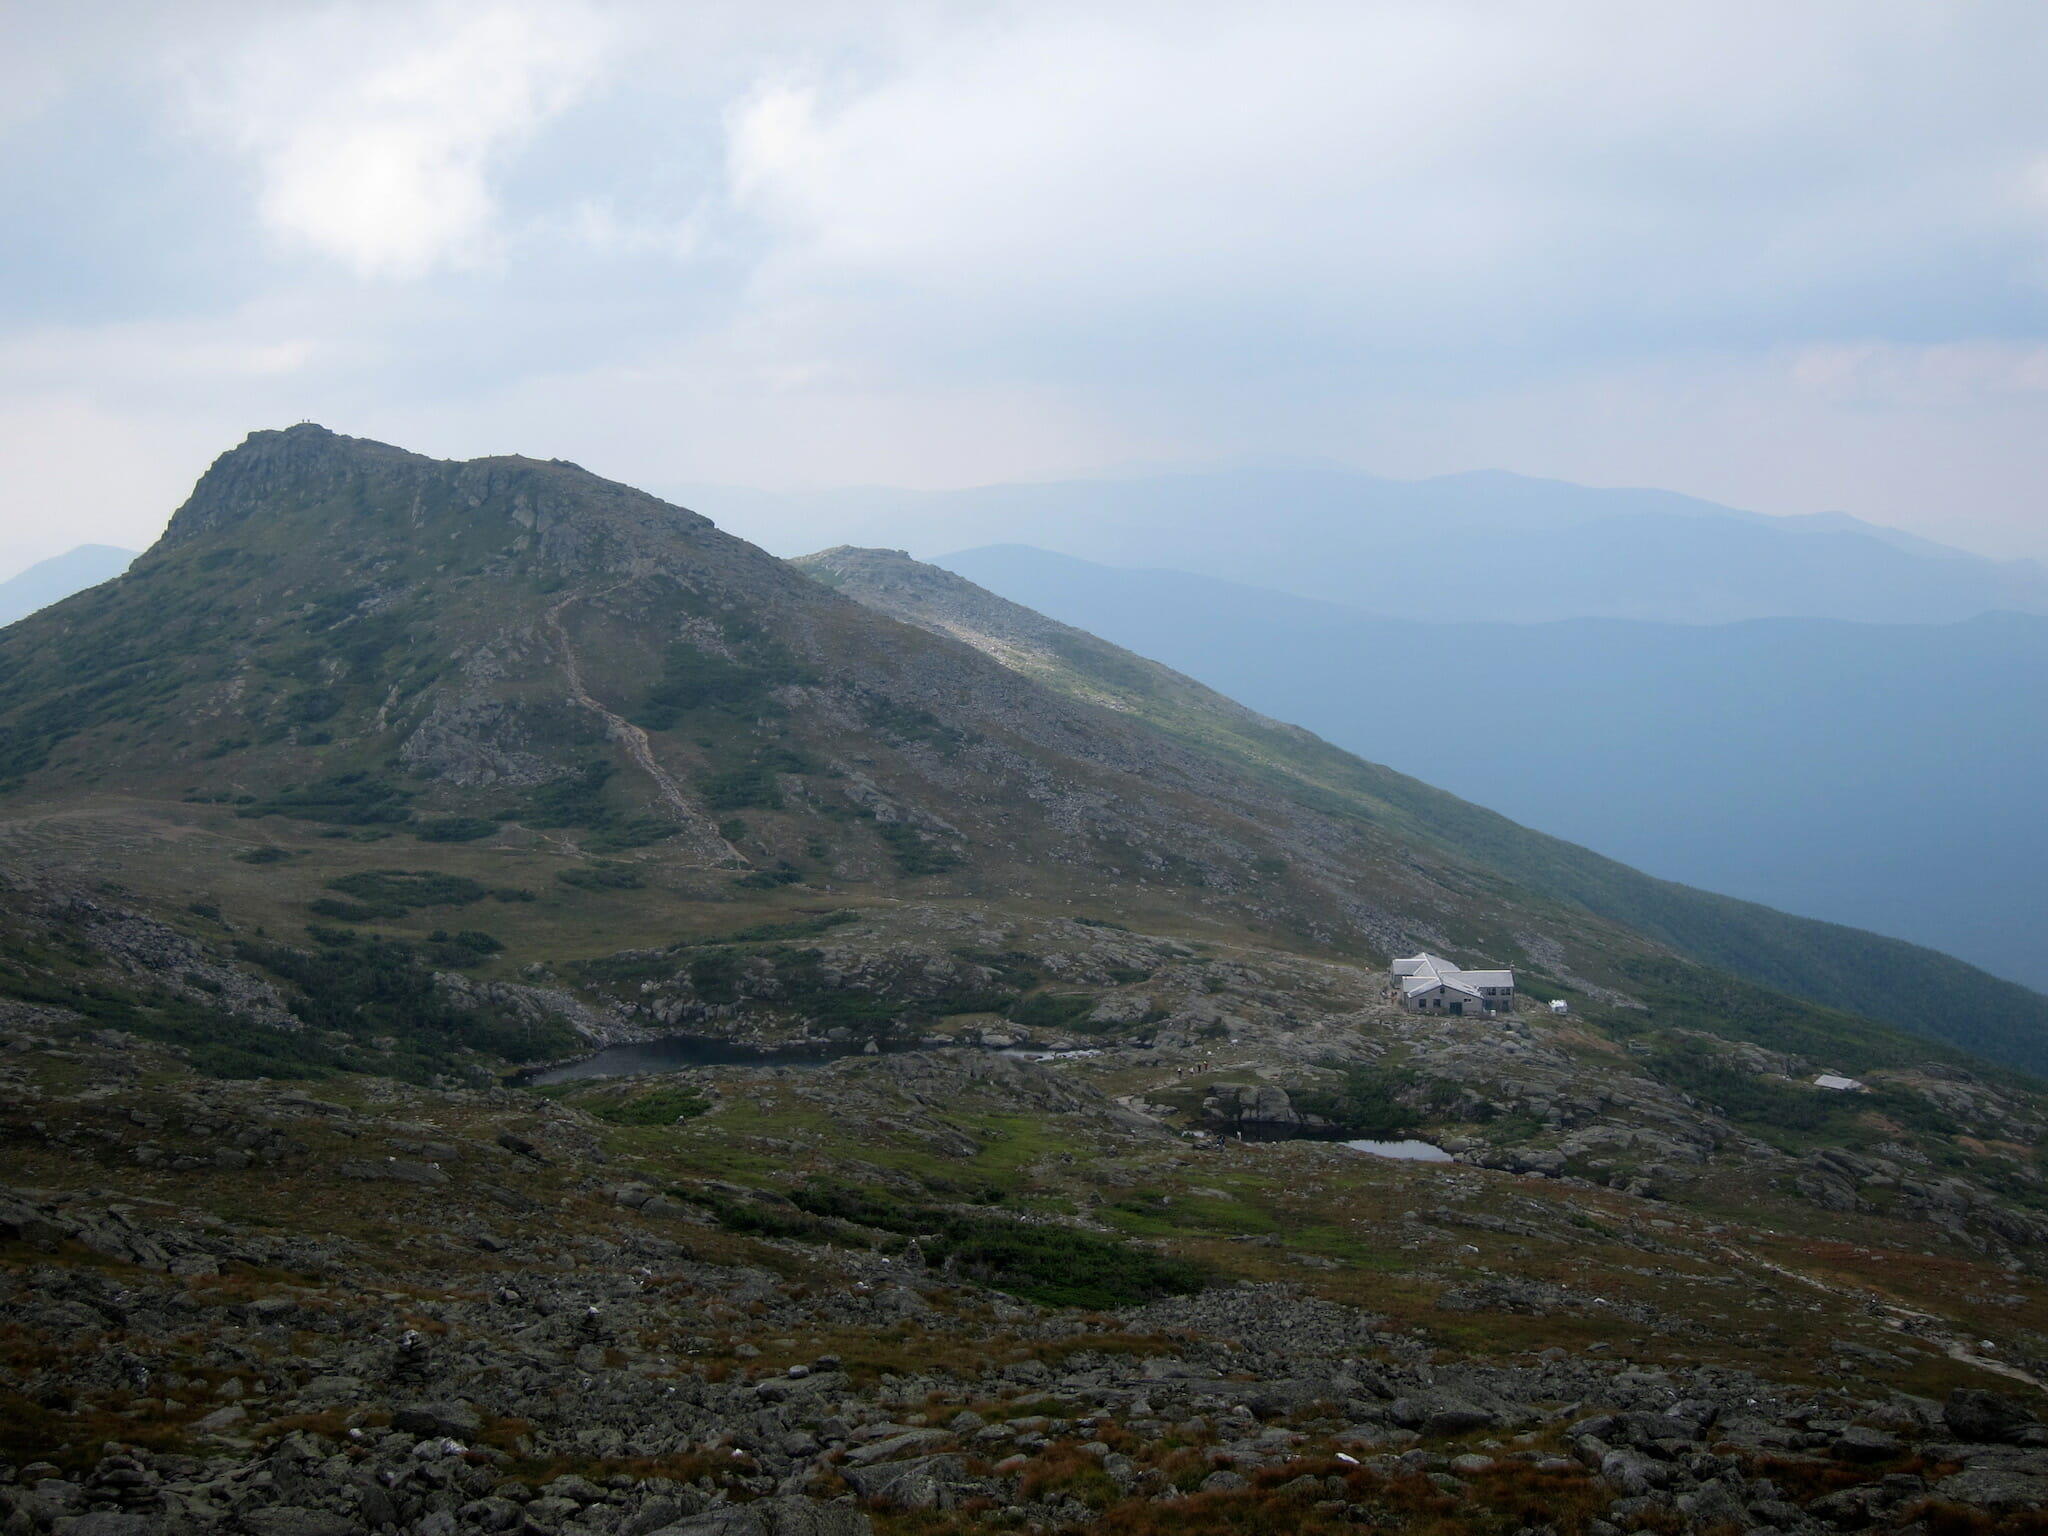 Lakes of the Clouds Hut and lakes, Mount Washington